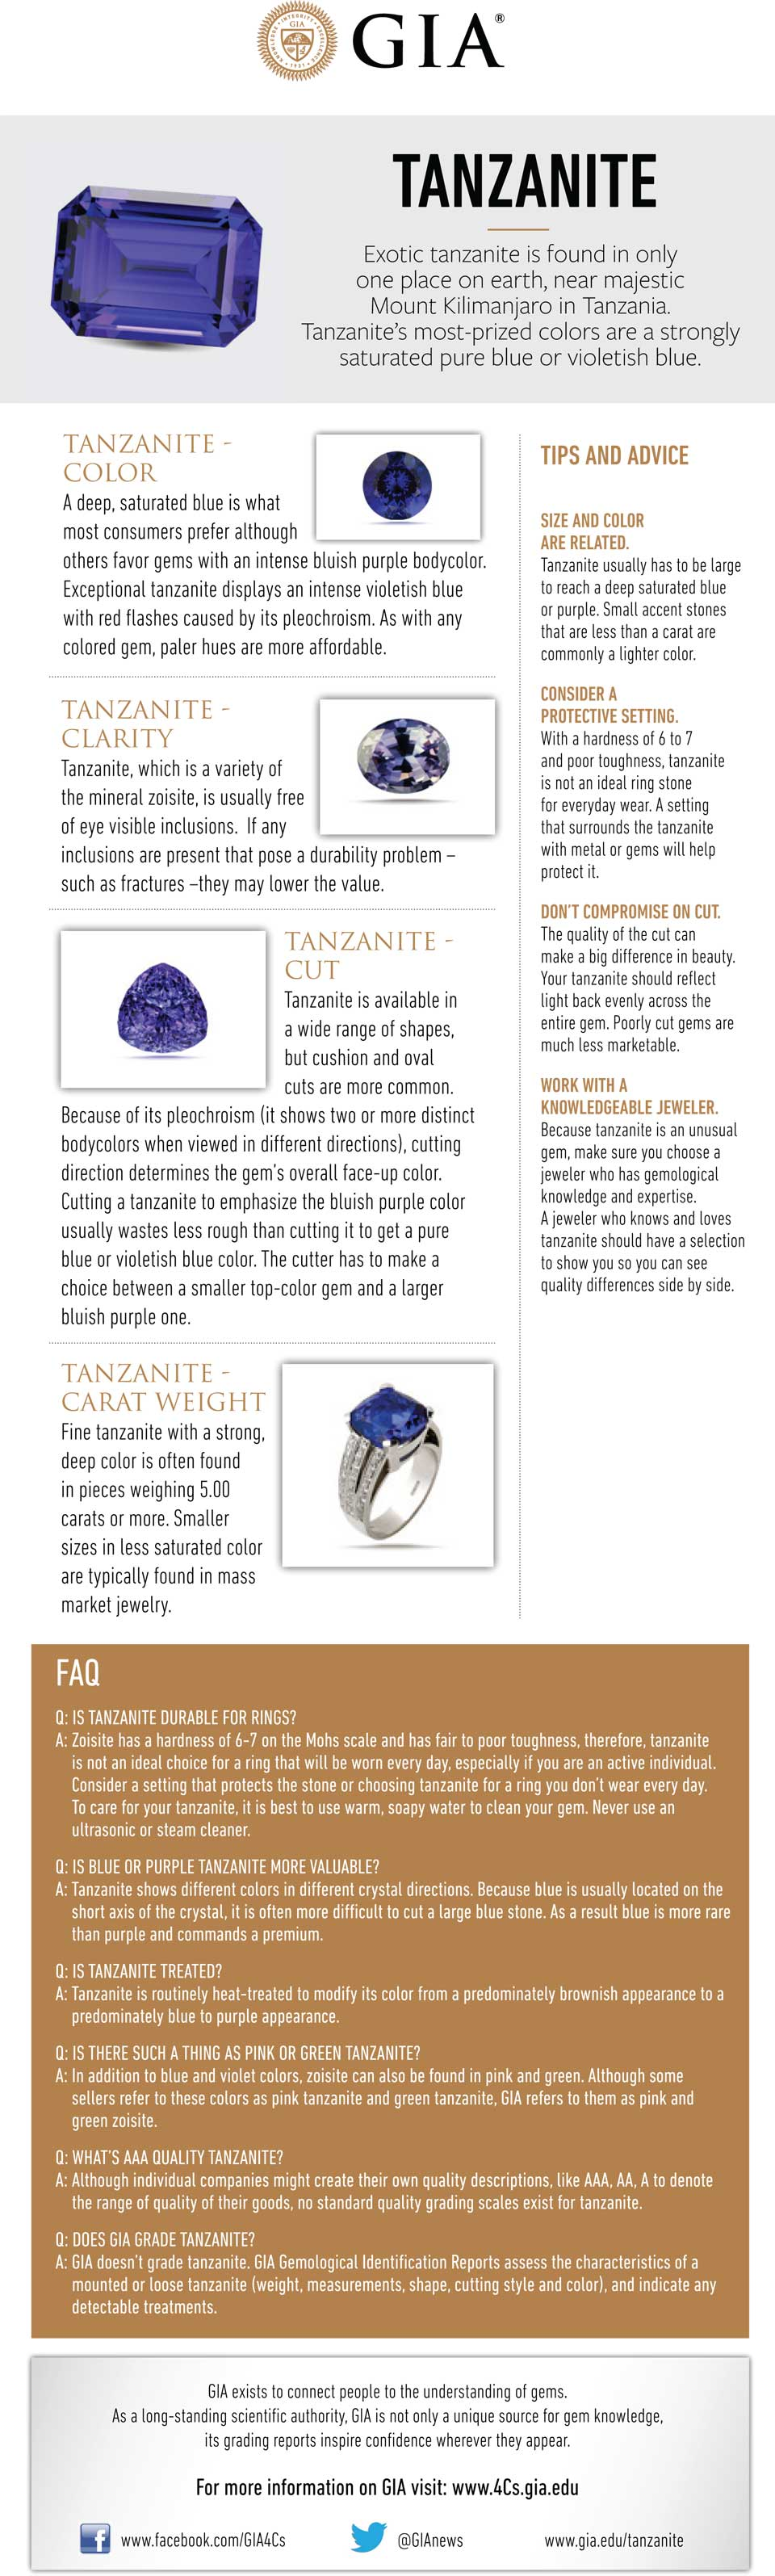 find carat tanzanite for sale by post blue party the status royal oh inclusions weight natural was gia posts grade good few with dimensions medium